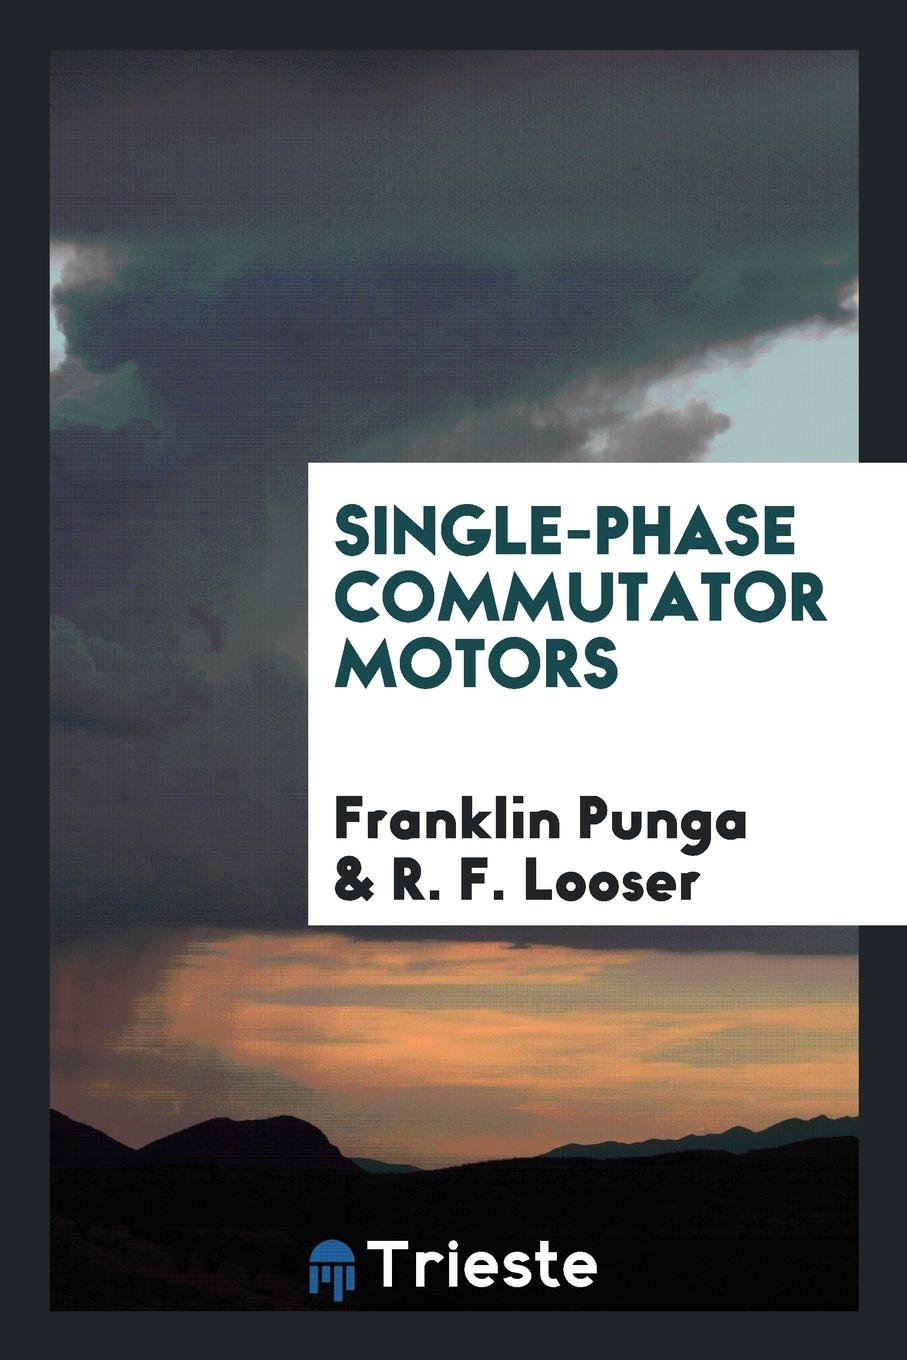 Single-Phase Commutator Motors Paperback – September 15, 2017